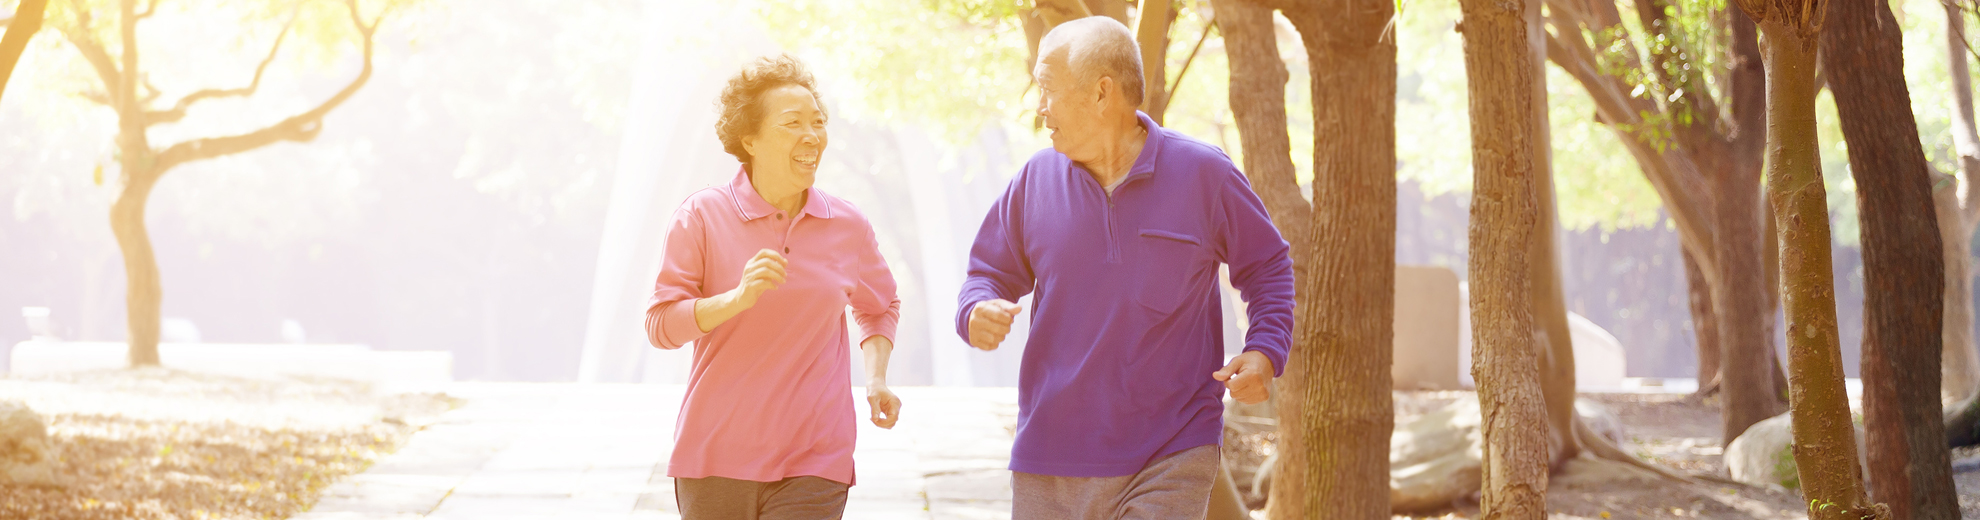 The challenges of an Aging Population